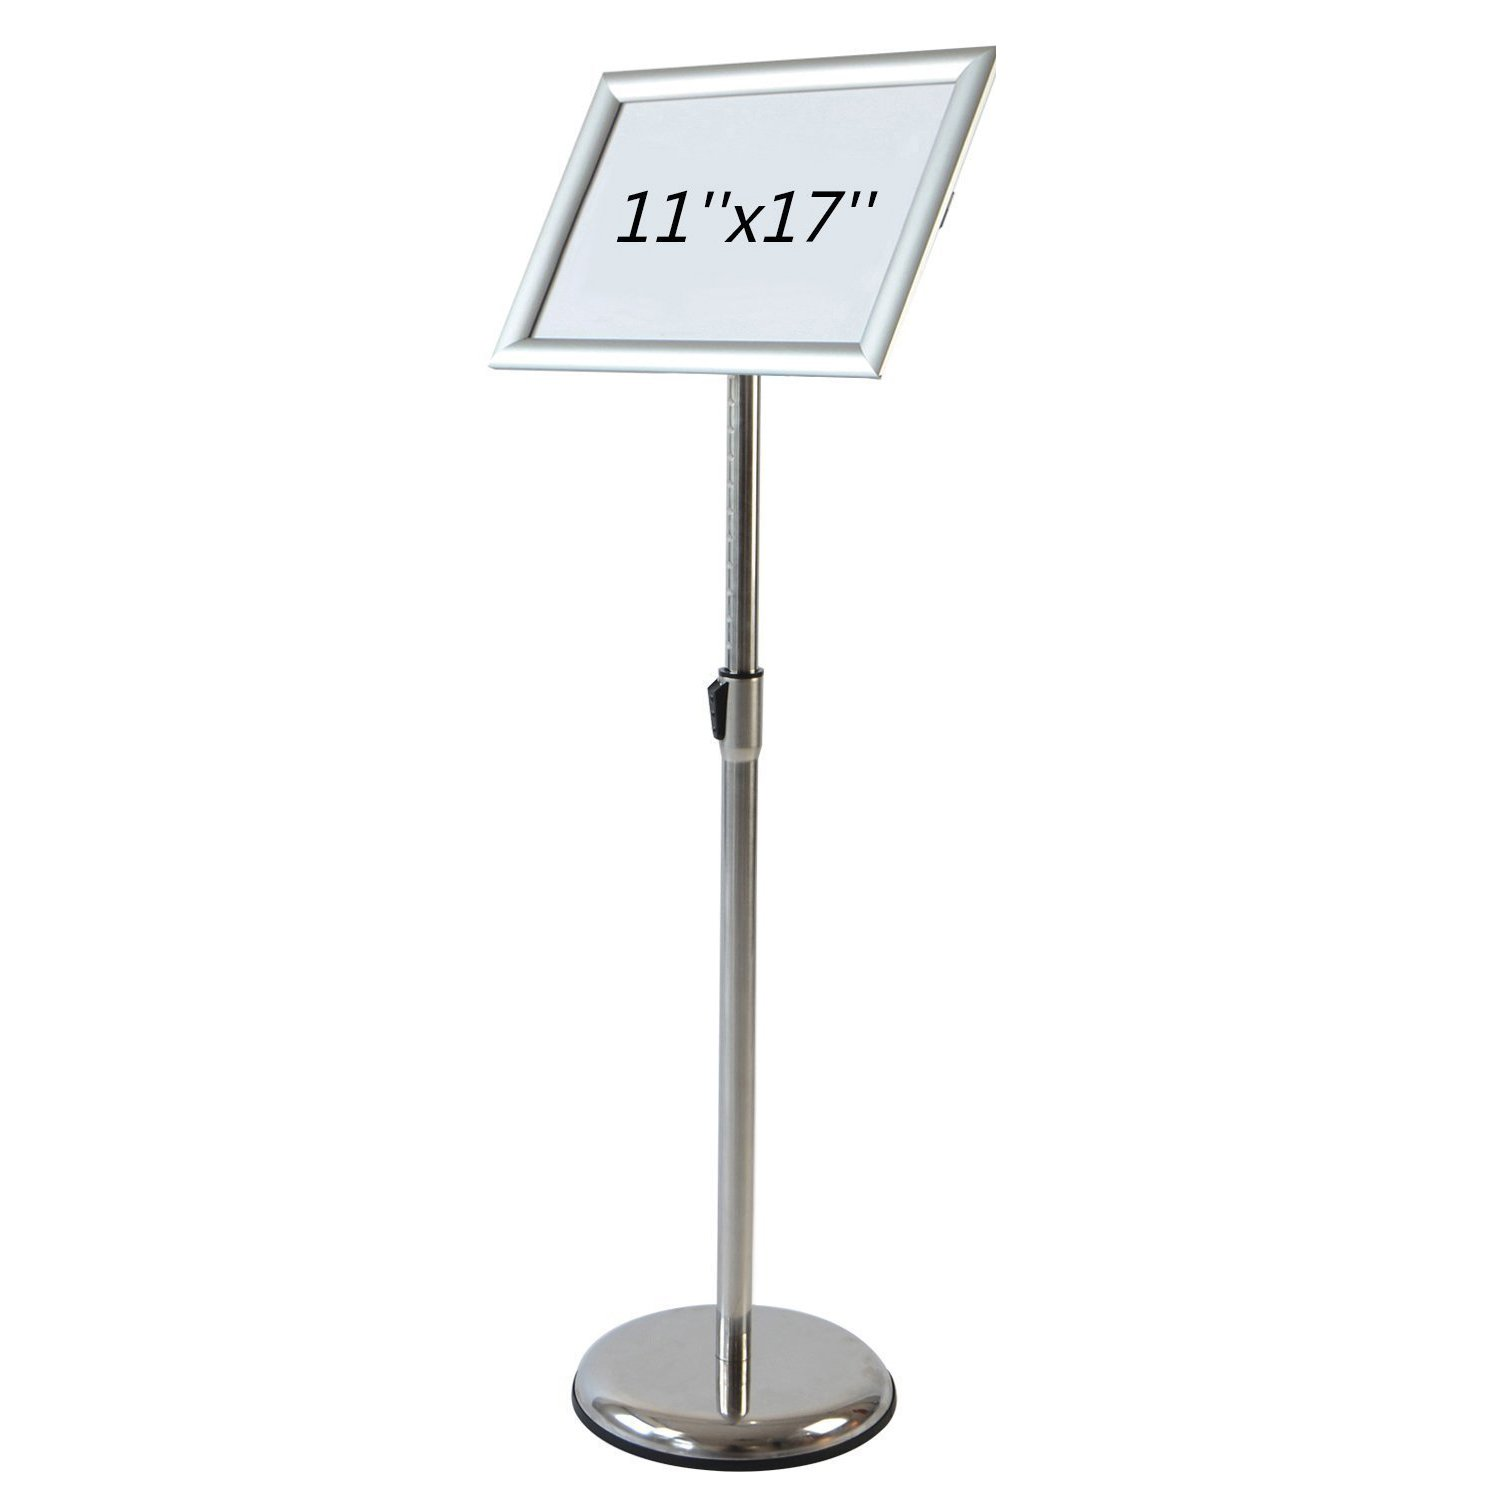 AboutDisplay Adjustable Pedestal Poster Stand with Rotating & Tilting Snap open Frame (for 11'' x 17'' Menus, Posters & Signs), Vertical and Horizontal Sign Displayed ...